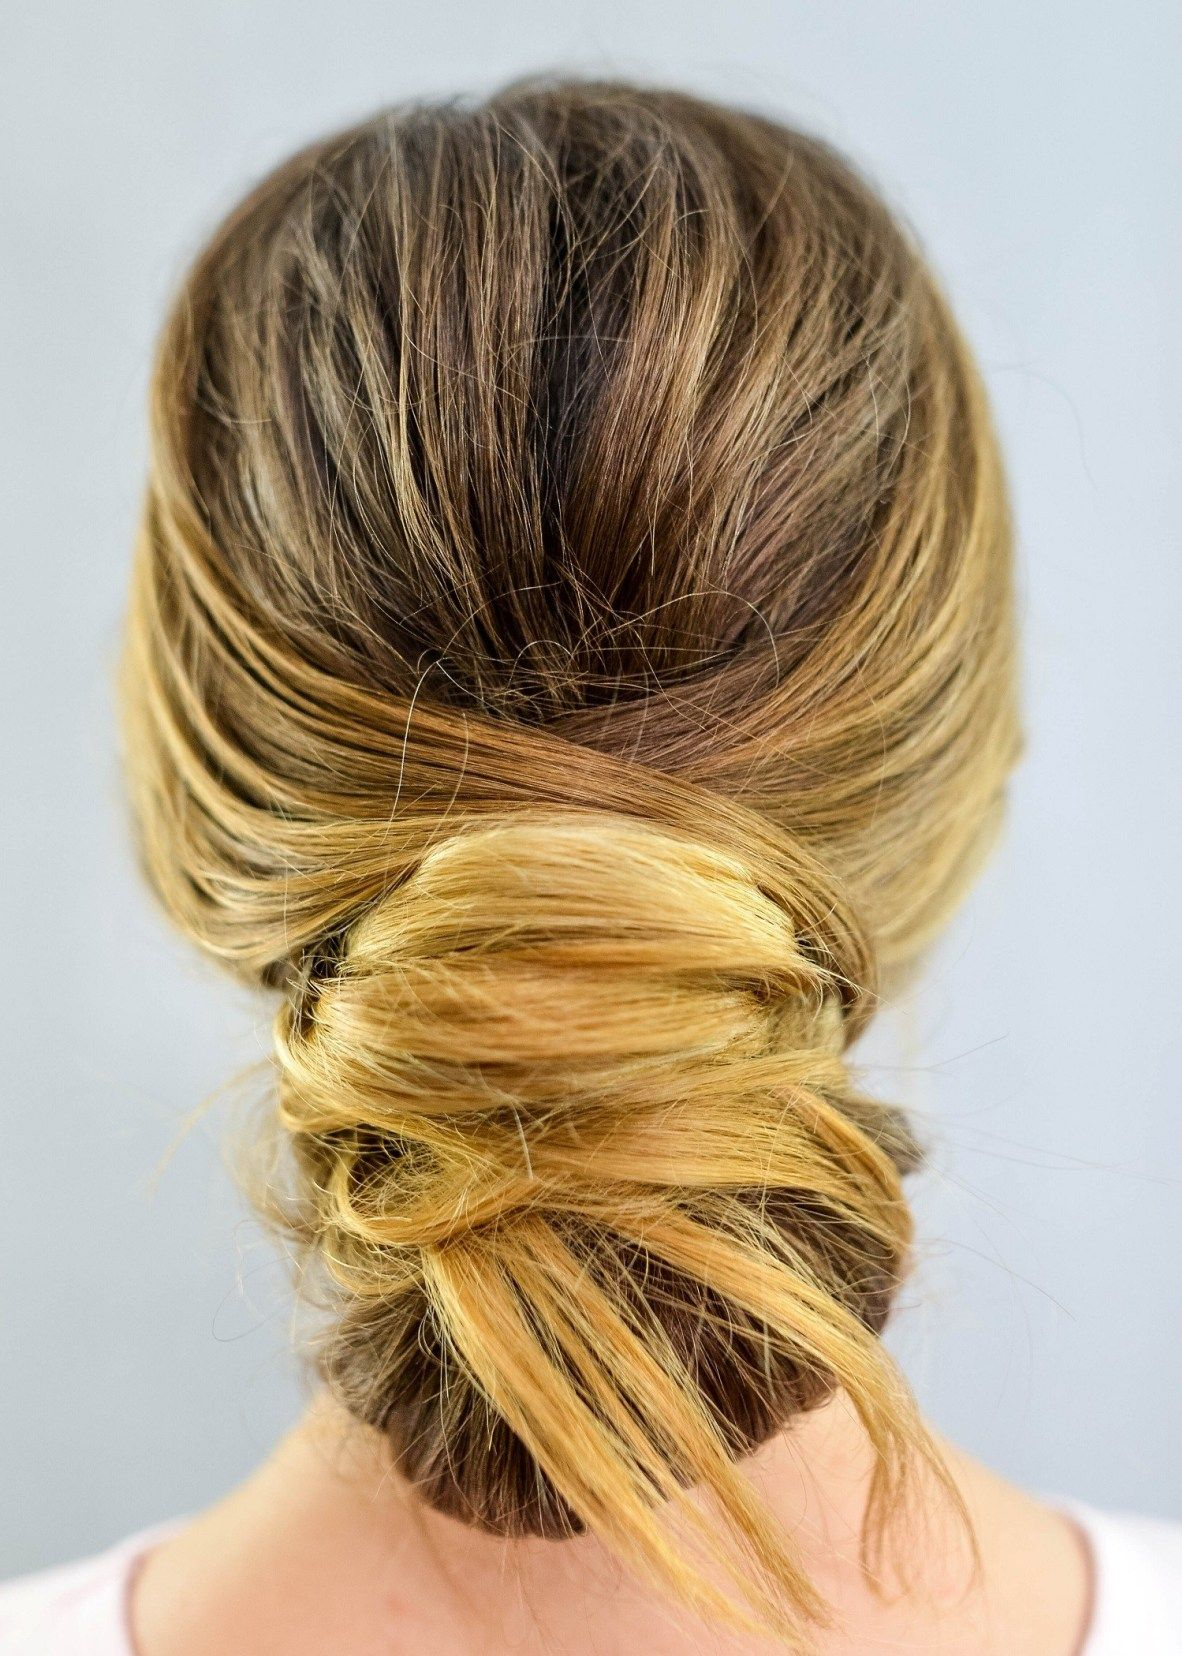 How To Make A Chic Chignon In 6 Easy Steps Easy Chignon Chignon Bun Chignon Hair